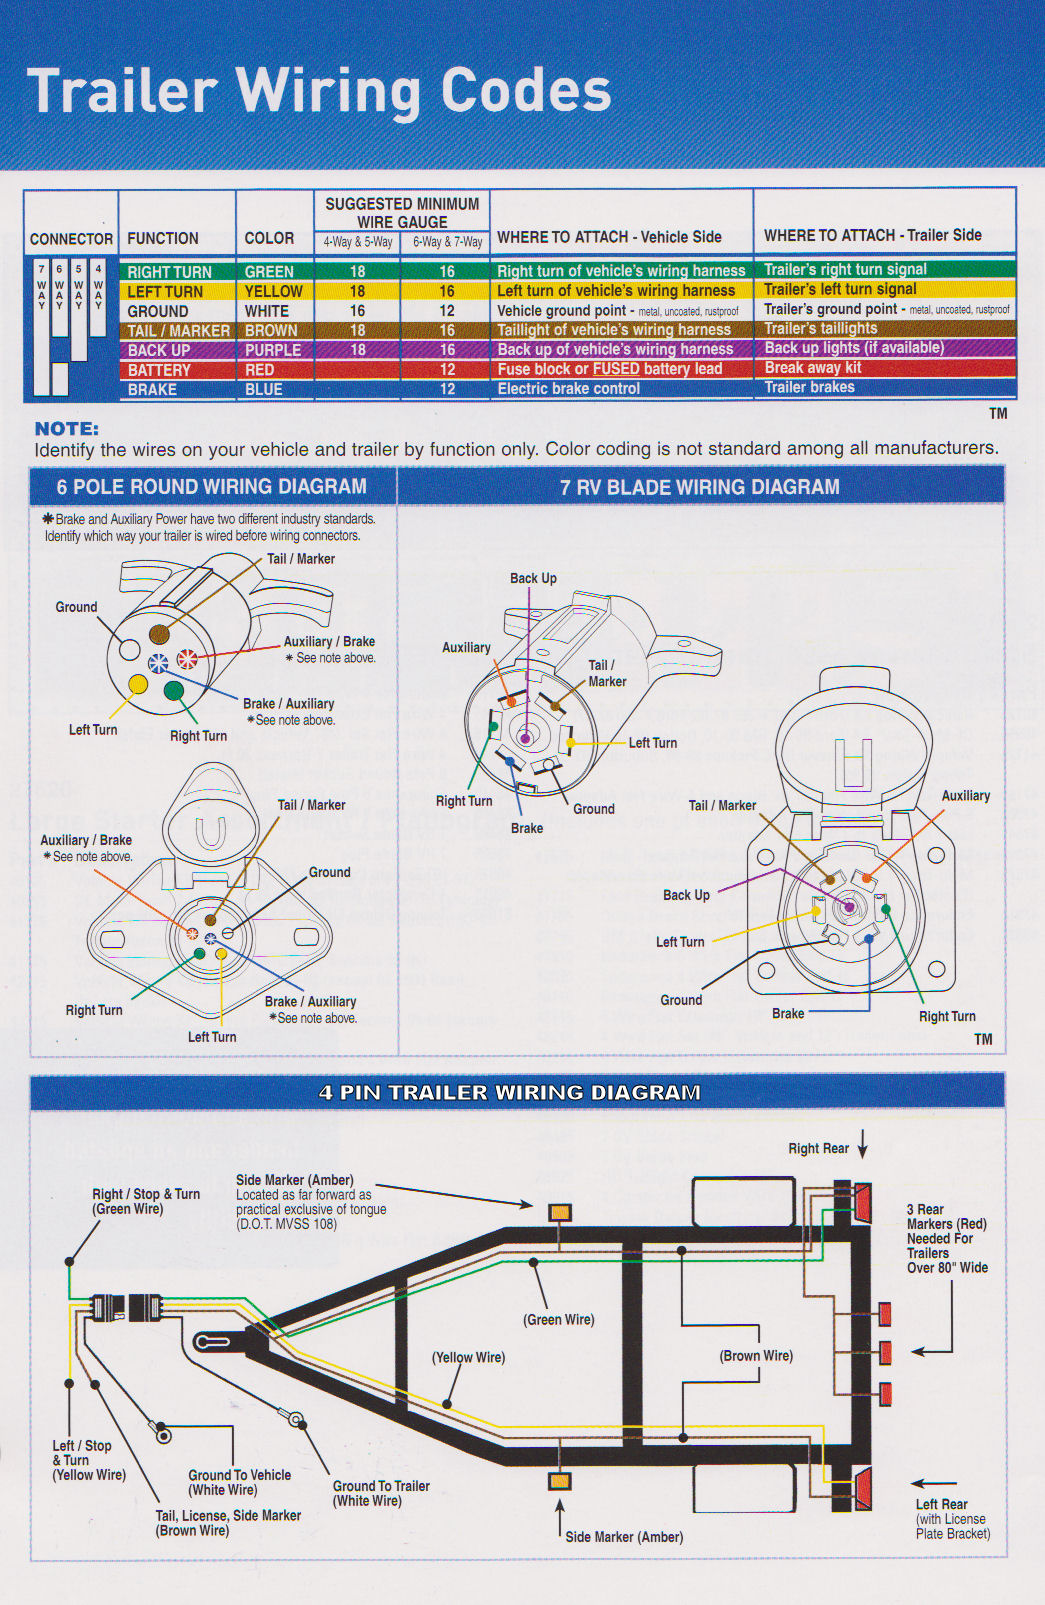 Trailer Wiring Diagram trailer wiring diagram we are the trailer pros! cargo trailer wiring diagram at edmiracle.co